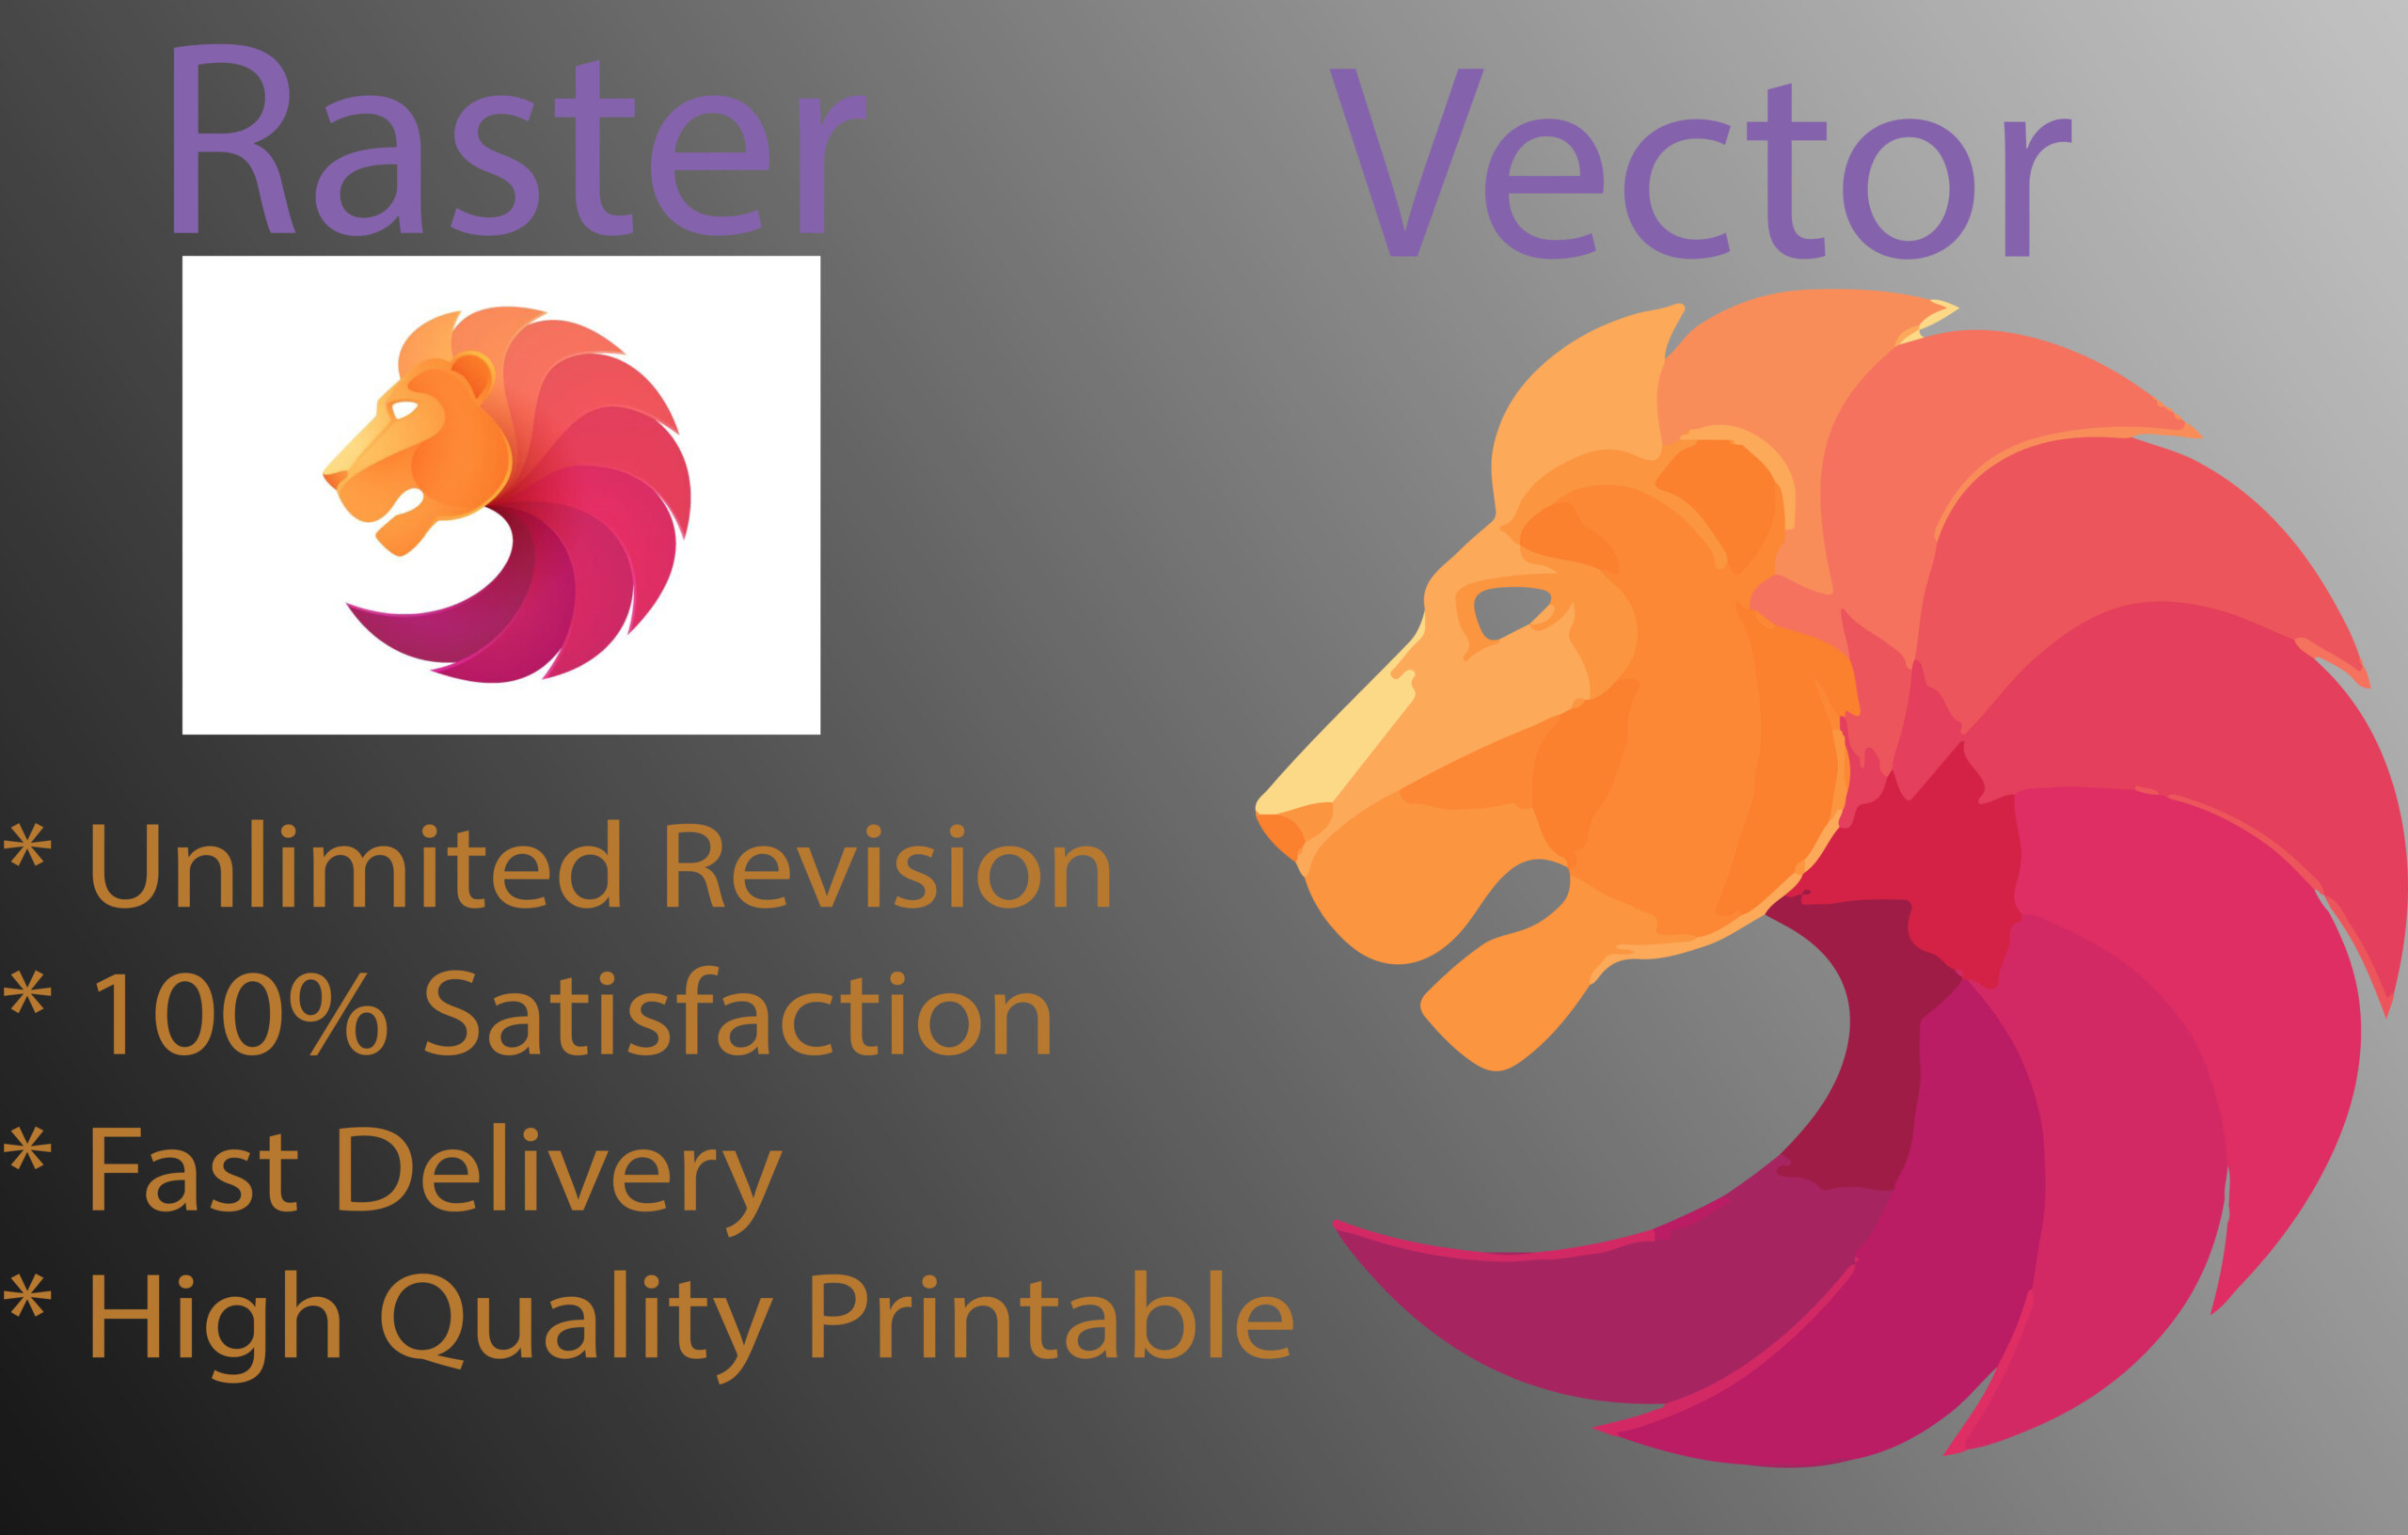 Design Vector Trace, Convert Your Logoolivergraphic